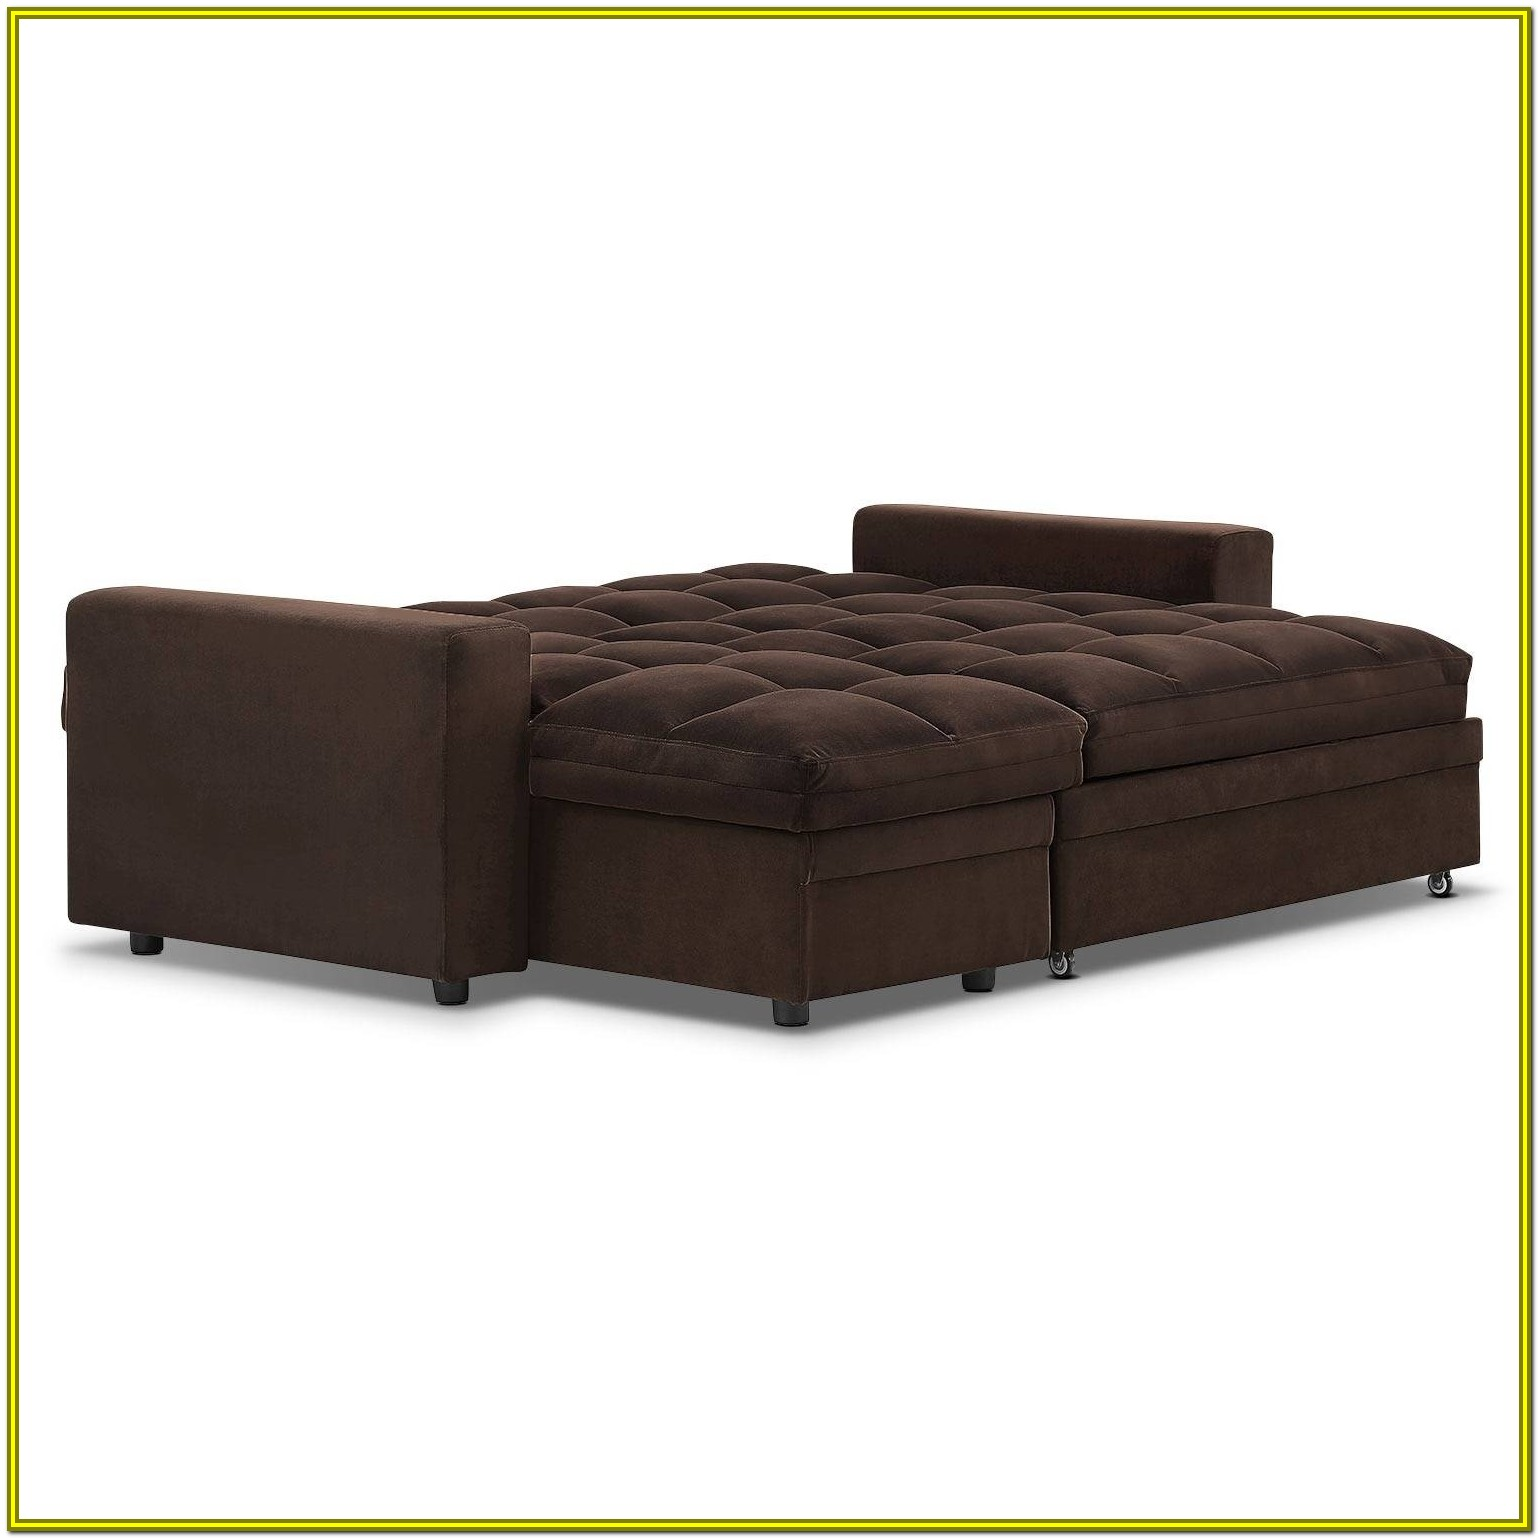 Sofa Bed With Chaise Storage